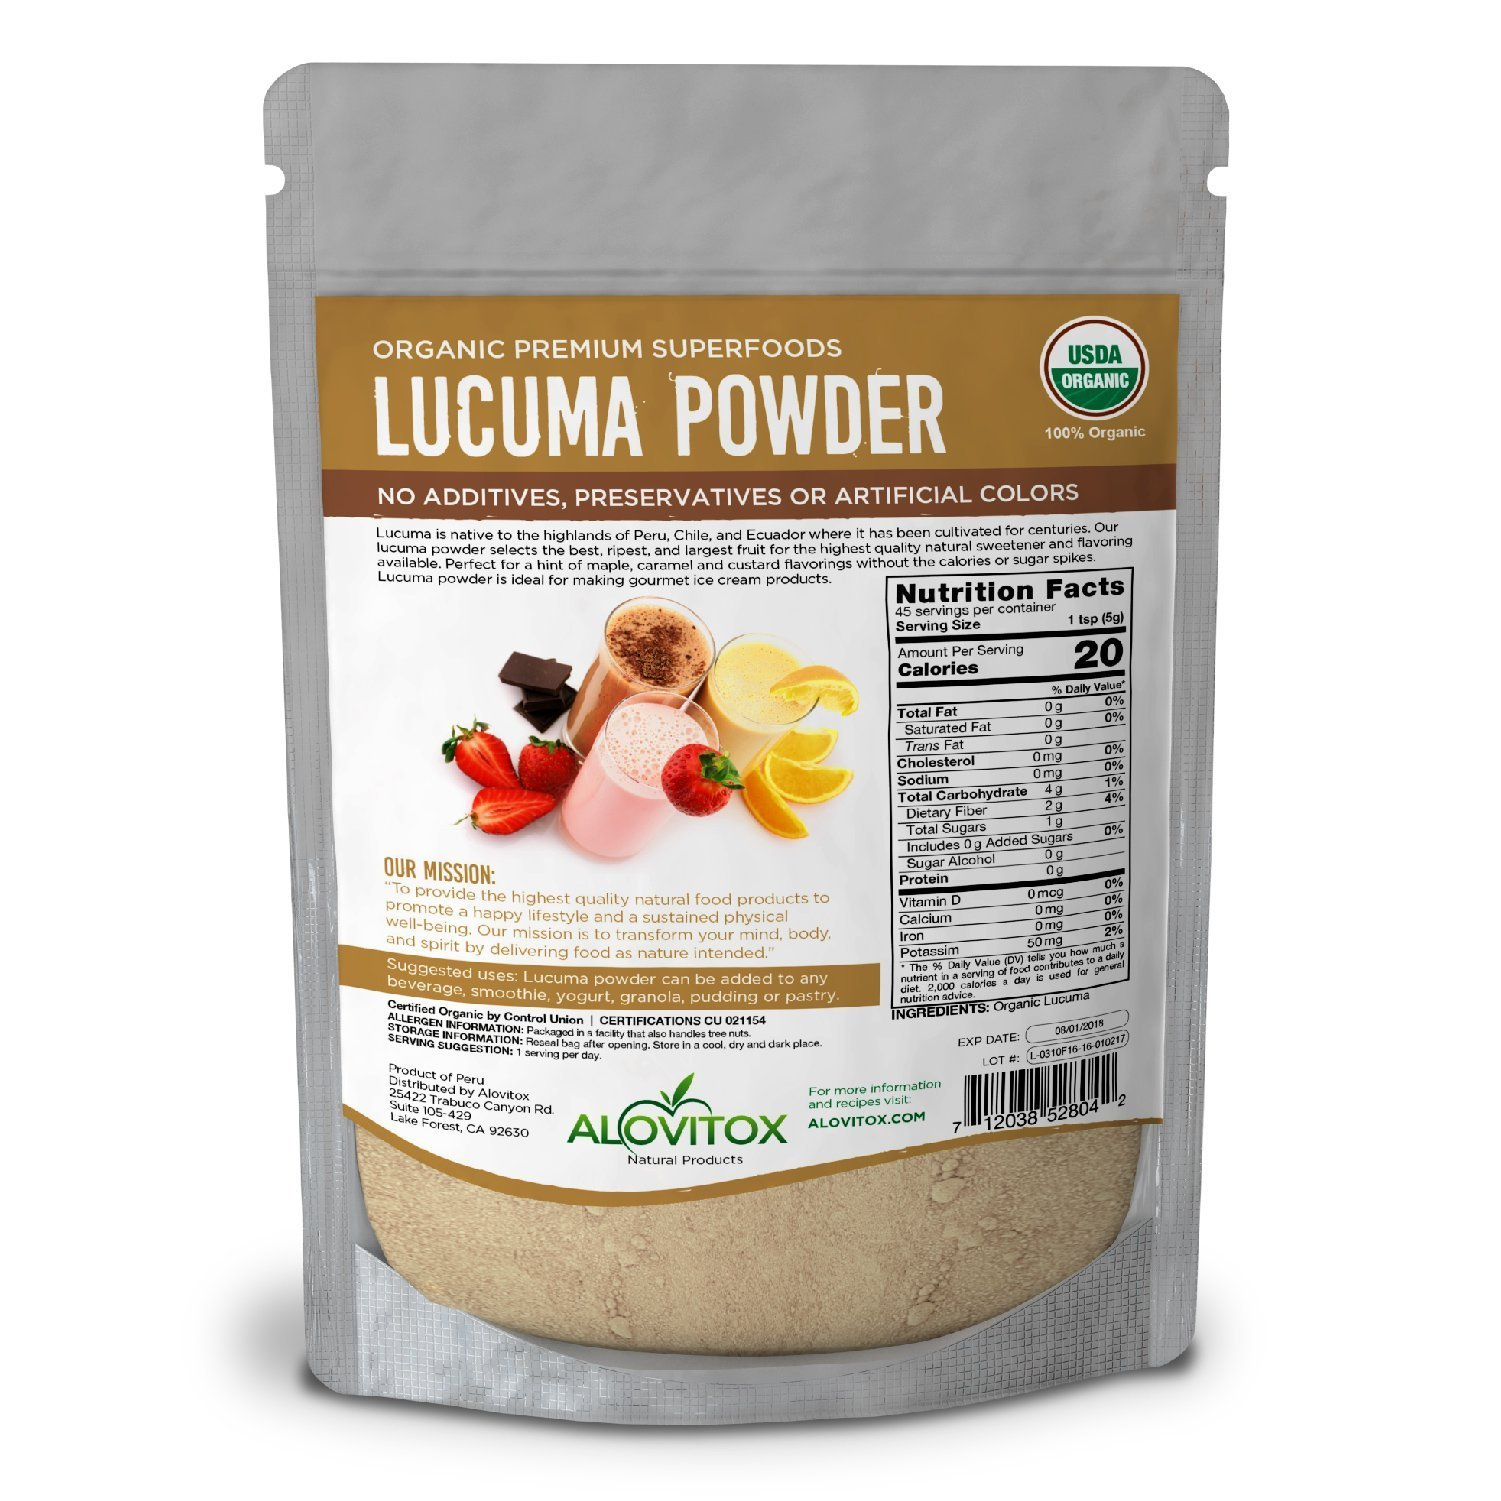 Lucuma Powder Superfood - Certified Organic, Raw, Pure and Healthy - Smoothie Natural Sweetener, Vegan, Gluten Free 8oz Pouch - Great in Yogurt, Smoothies, Ice Cream - By Alovitox by ALOVITOX (Image #7)